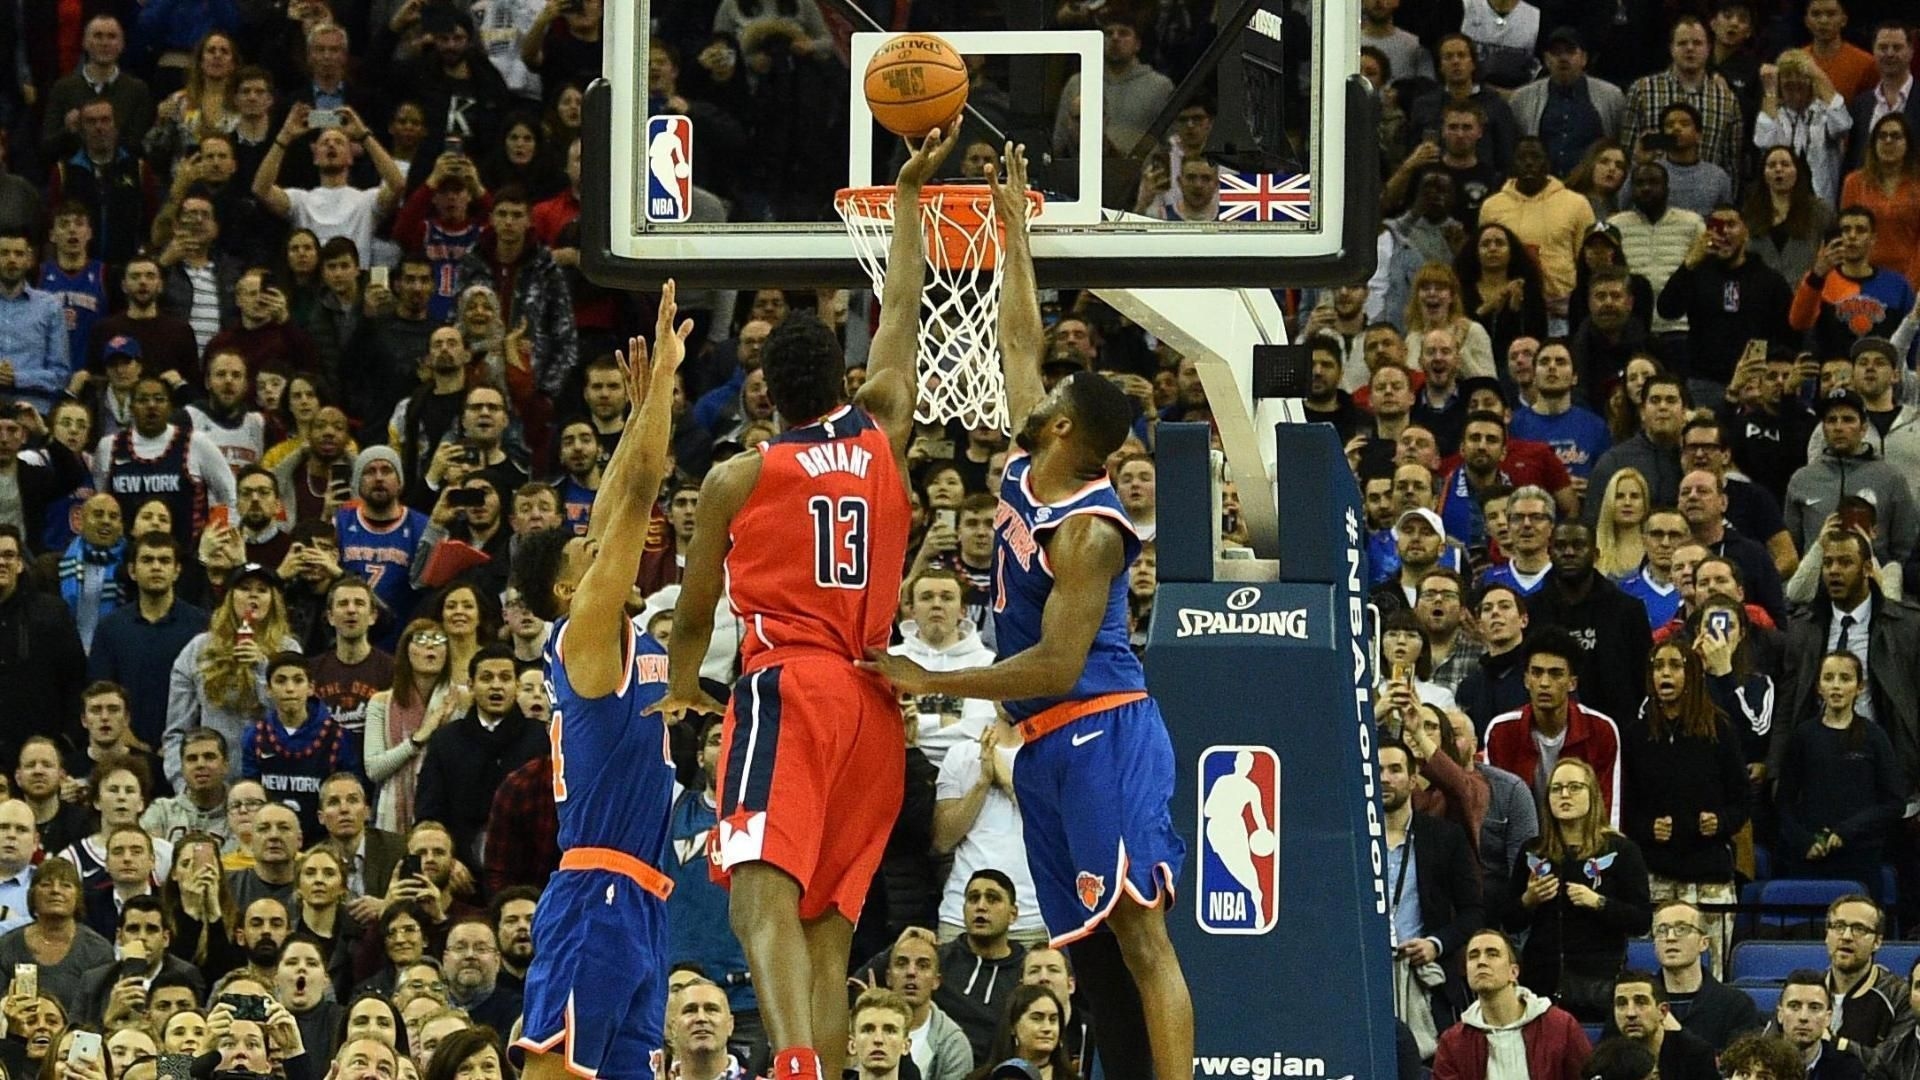 Knicks fall to Wizards on goaltending call